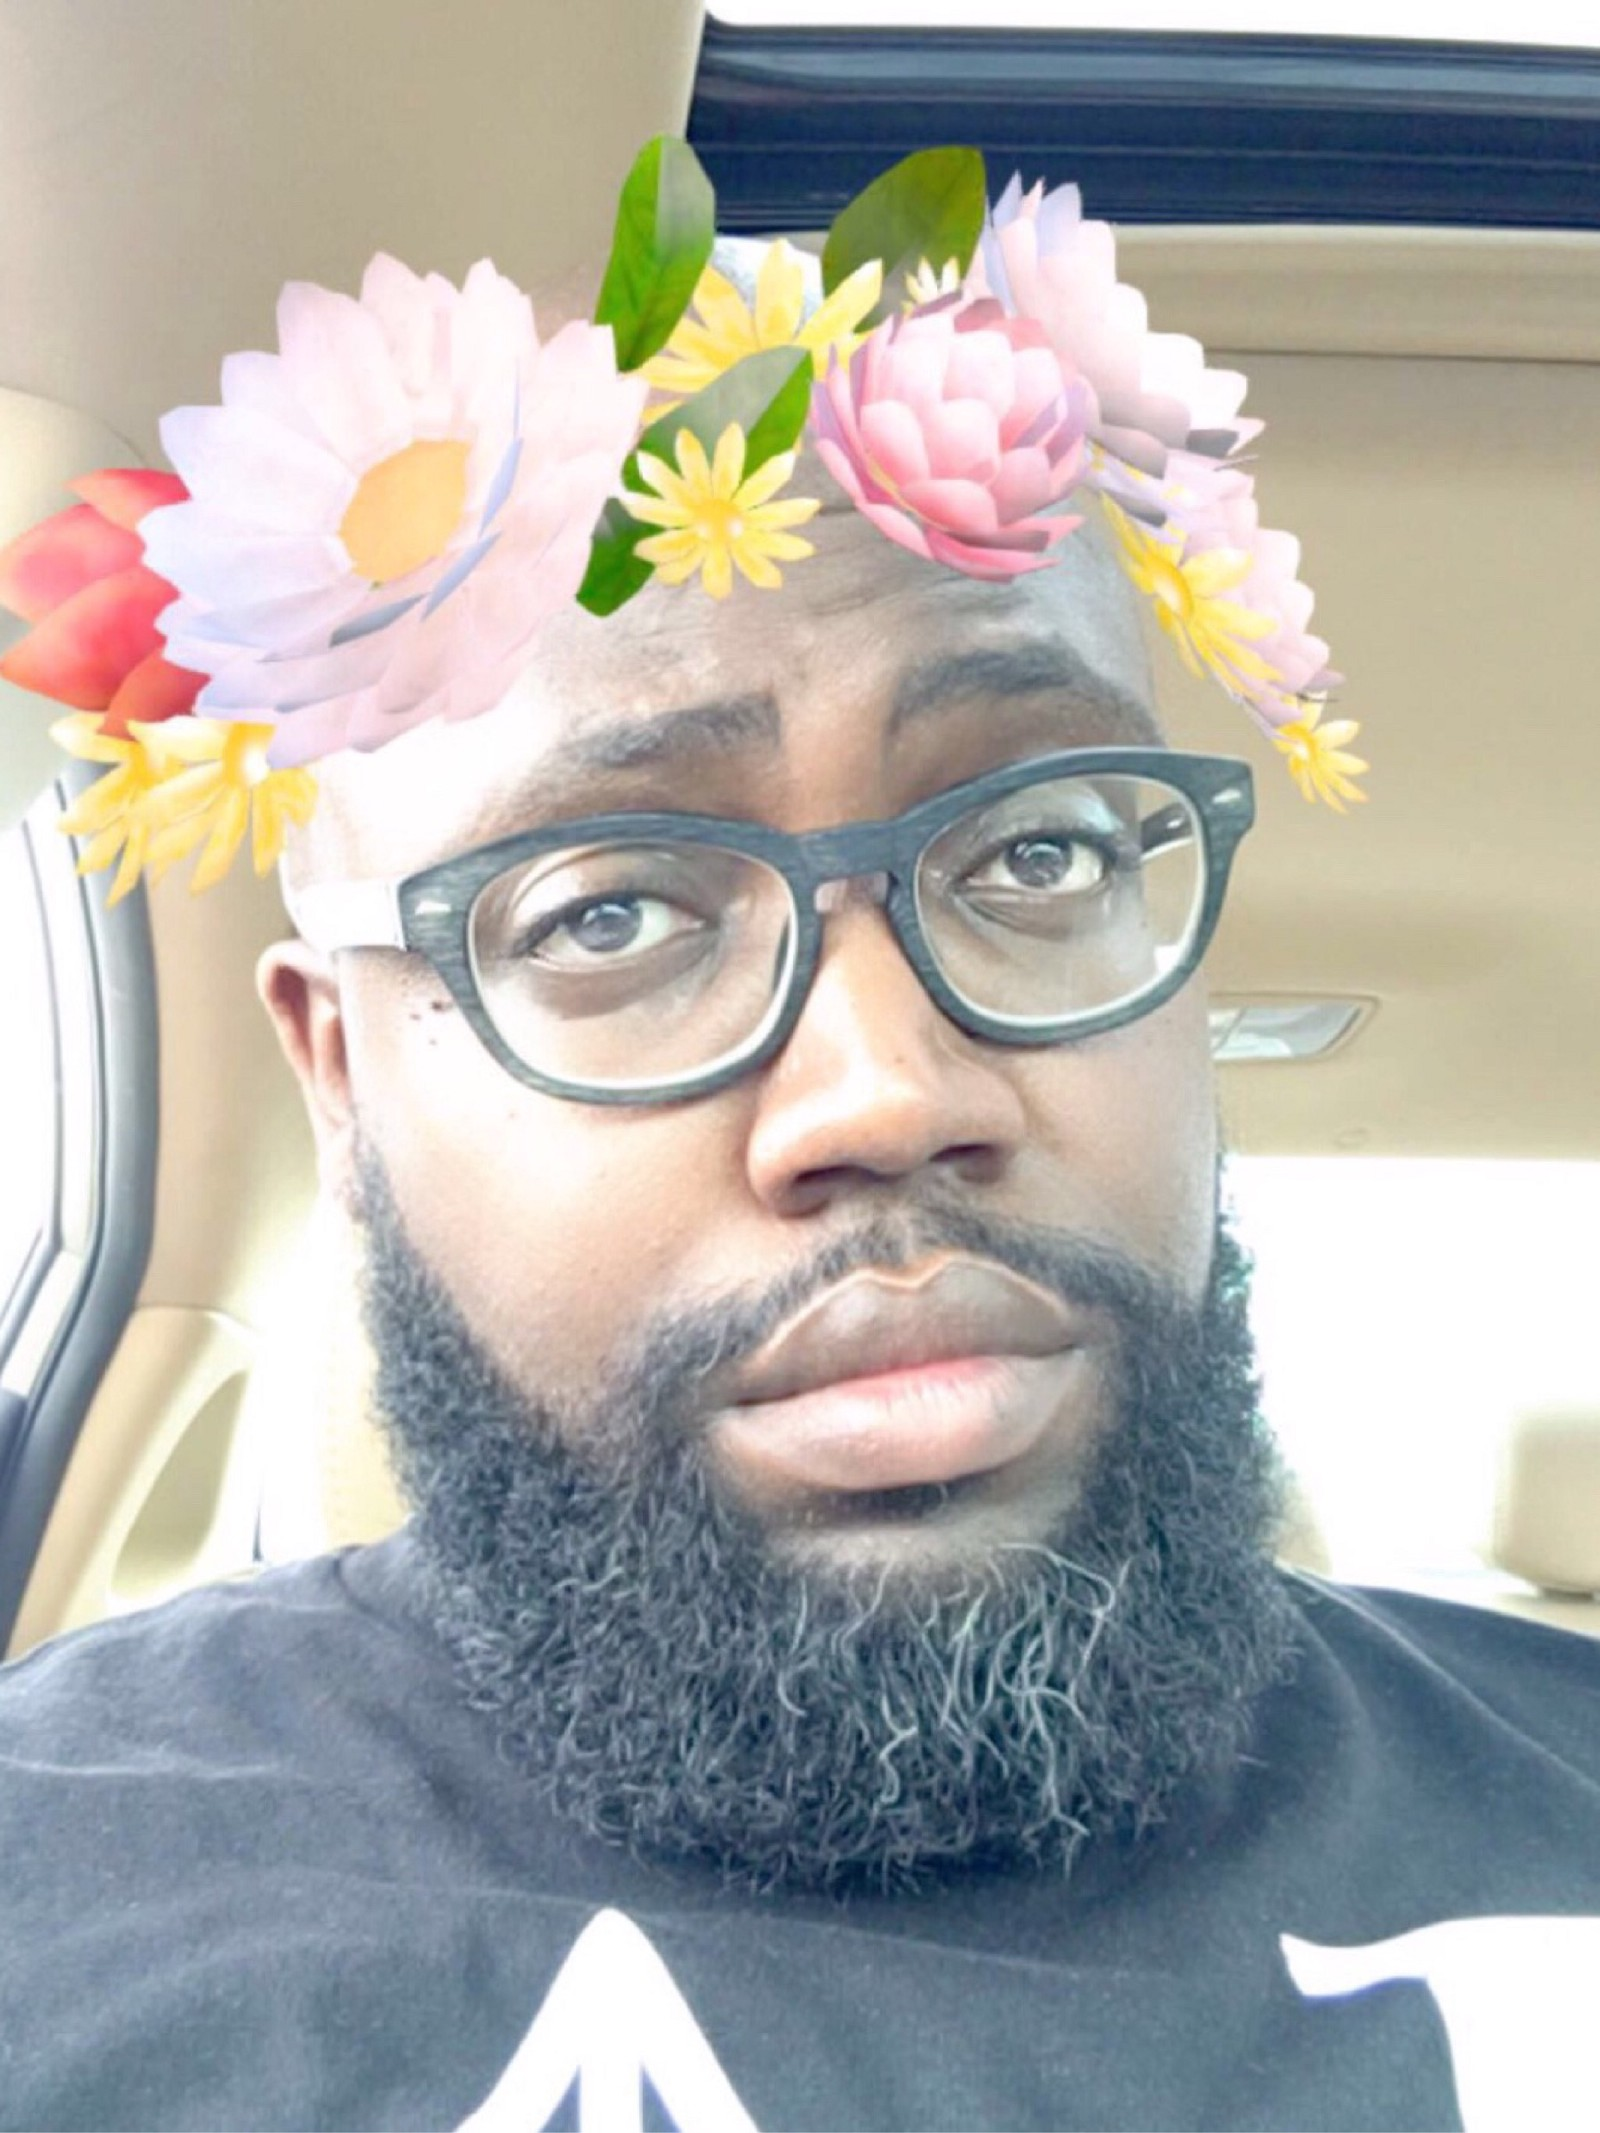 Blackmenlove reggie noble medium we see men condemn other men and women for doing anything they perceive as feminine men posting pictures with the flower or butterfly crown izmirmasajfo